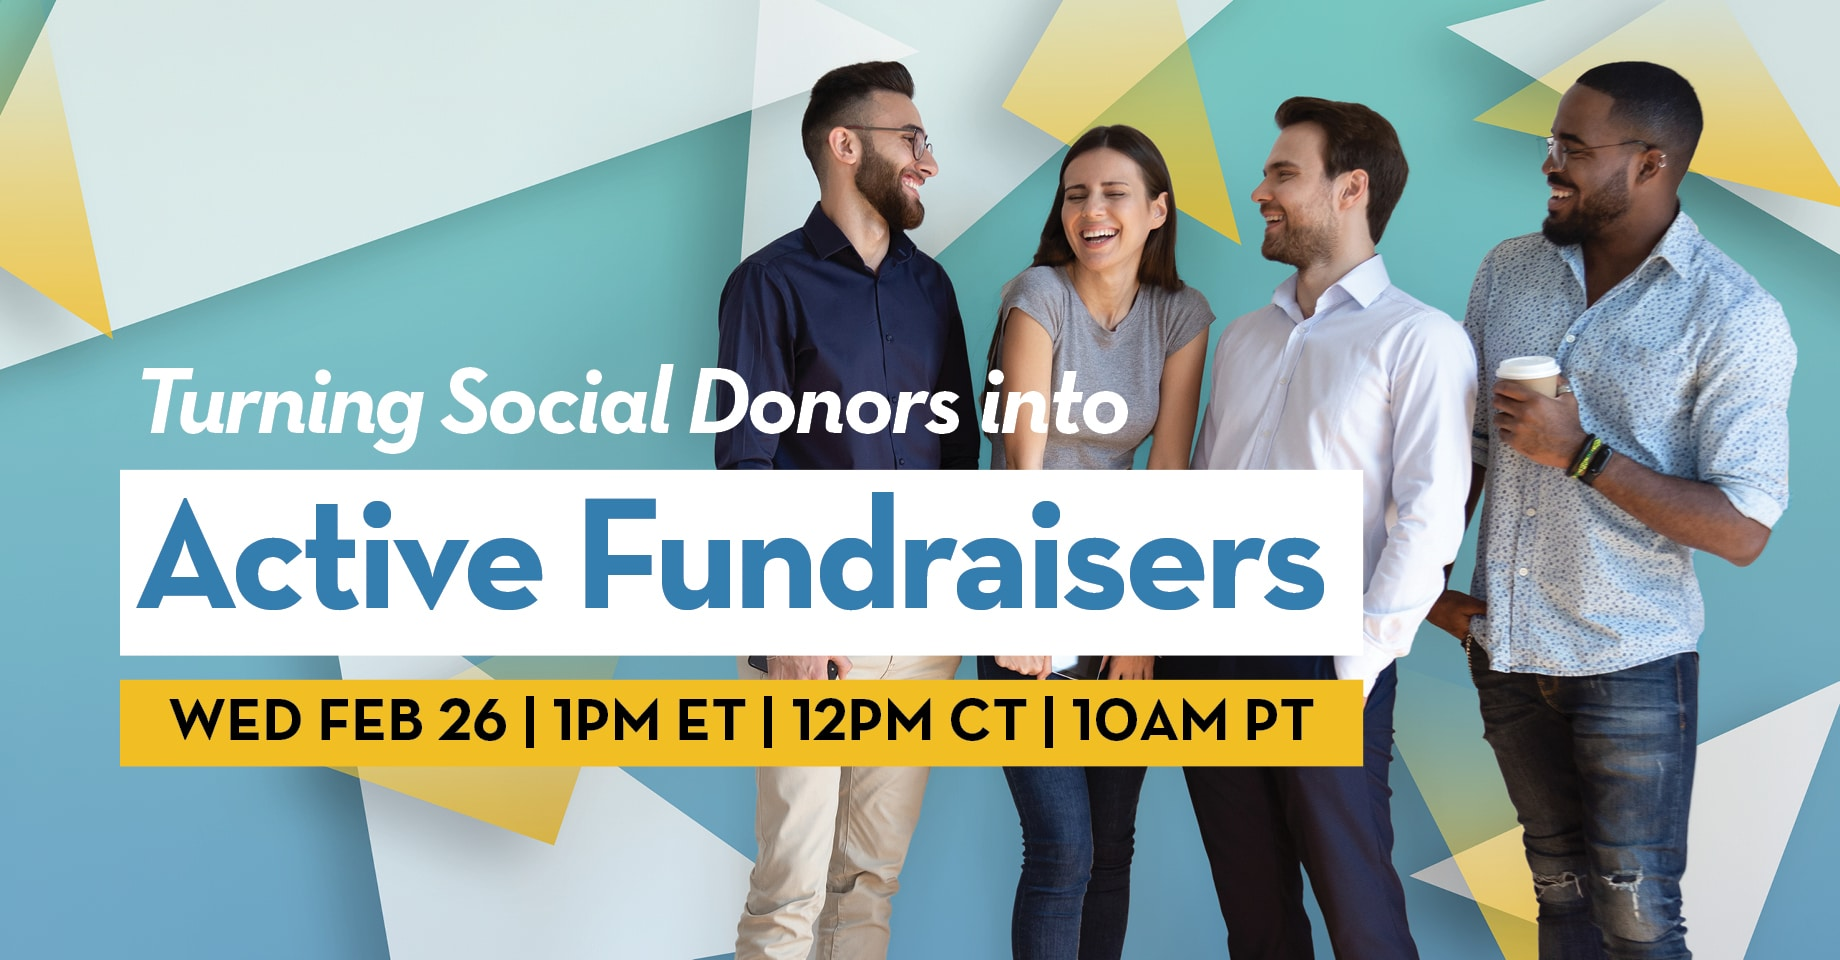 Turning Social Donors into Active Fundraisers